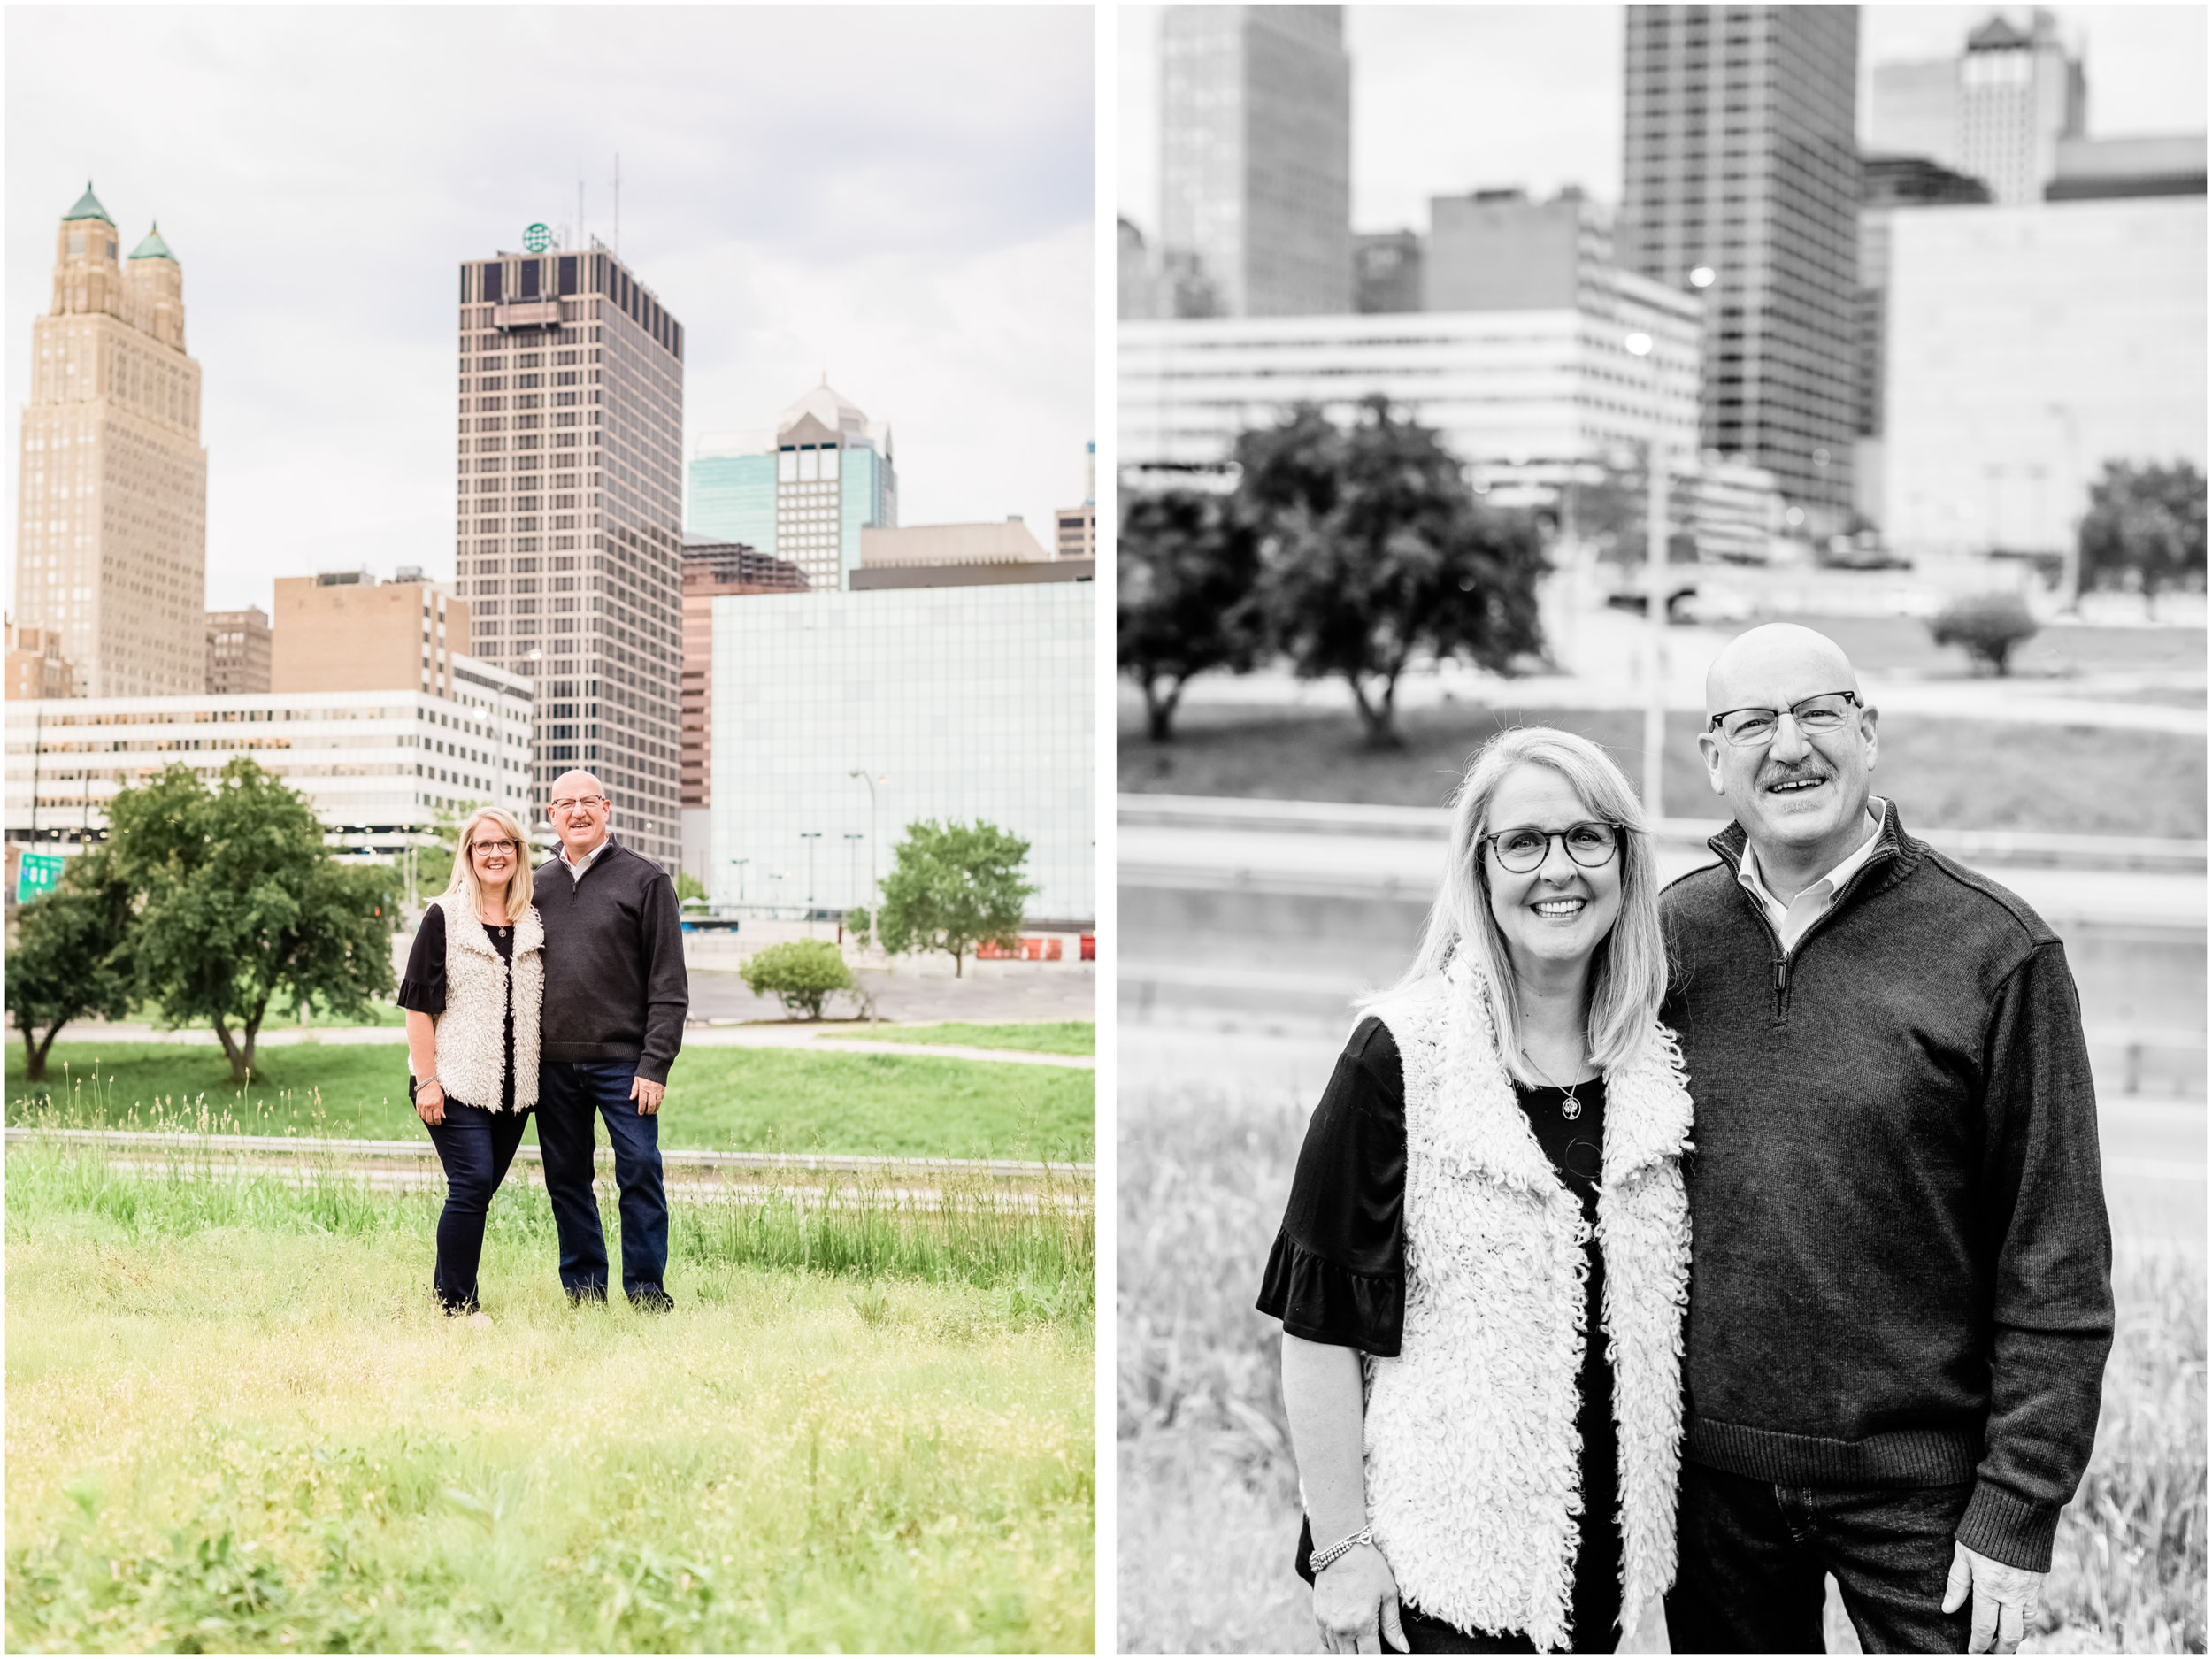 river market kc family photos 6.jpg